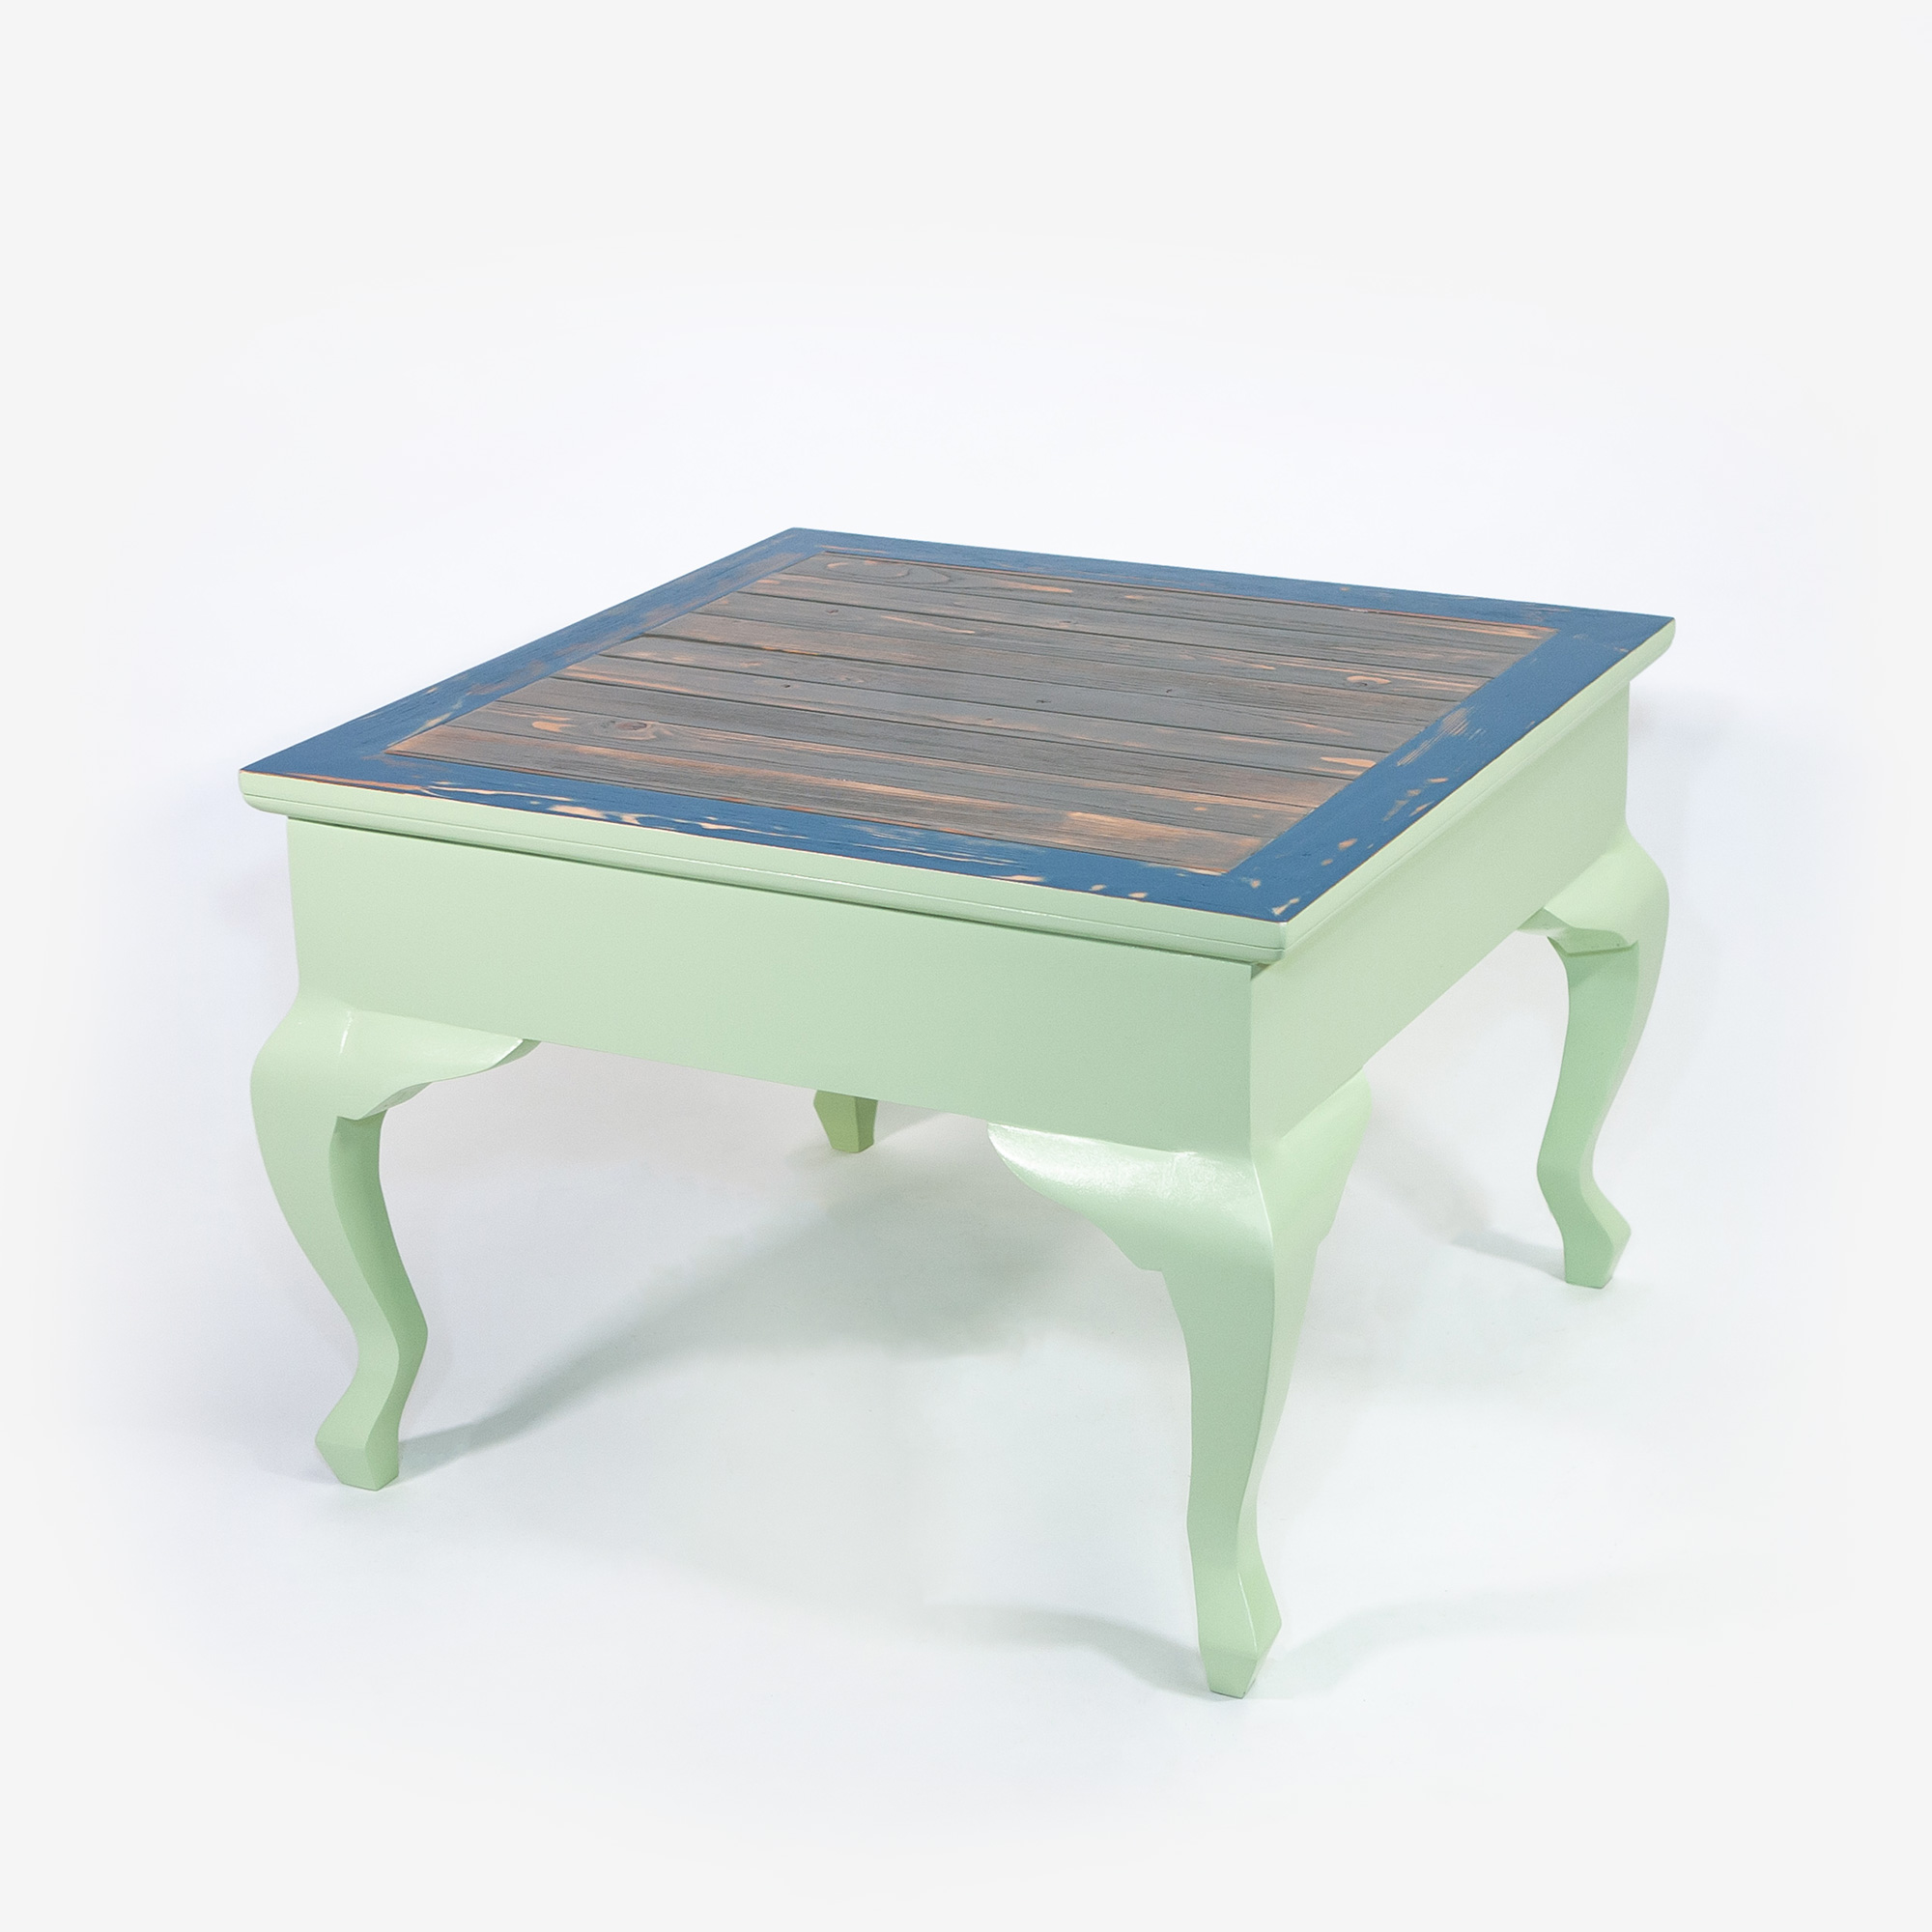 Table Basse Bois Vieilli.Table Basse Plymouth